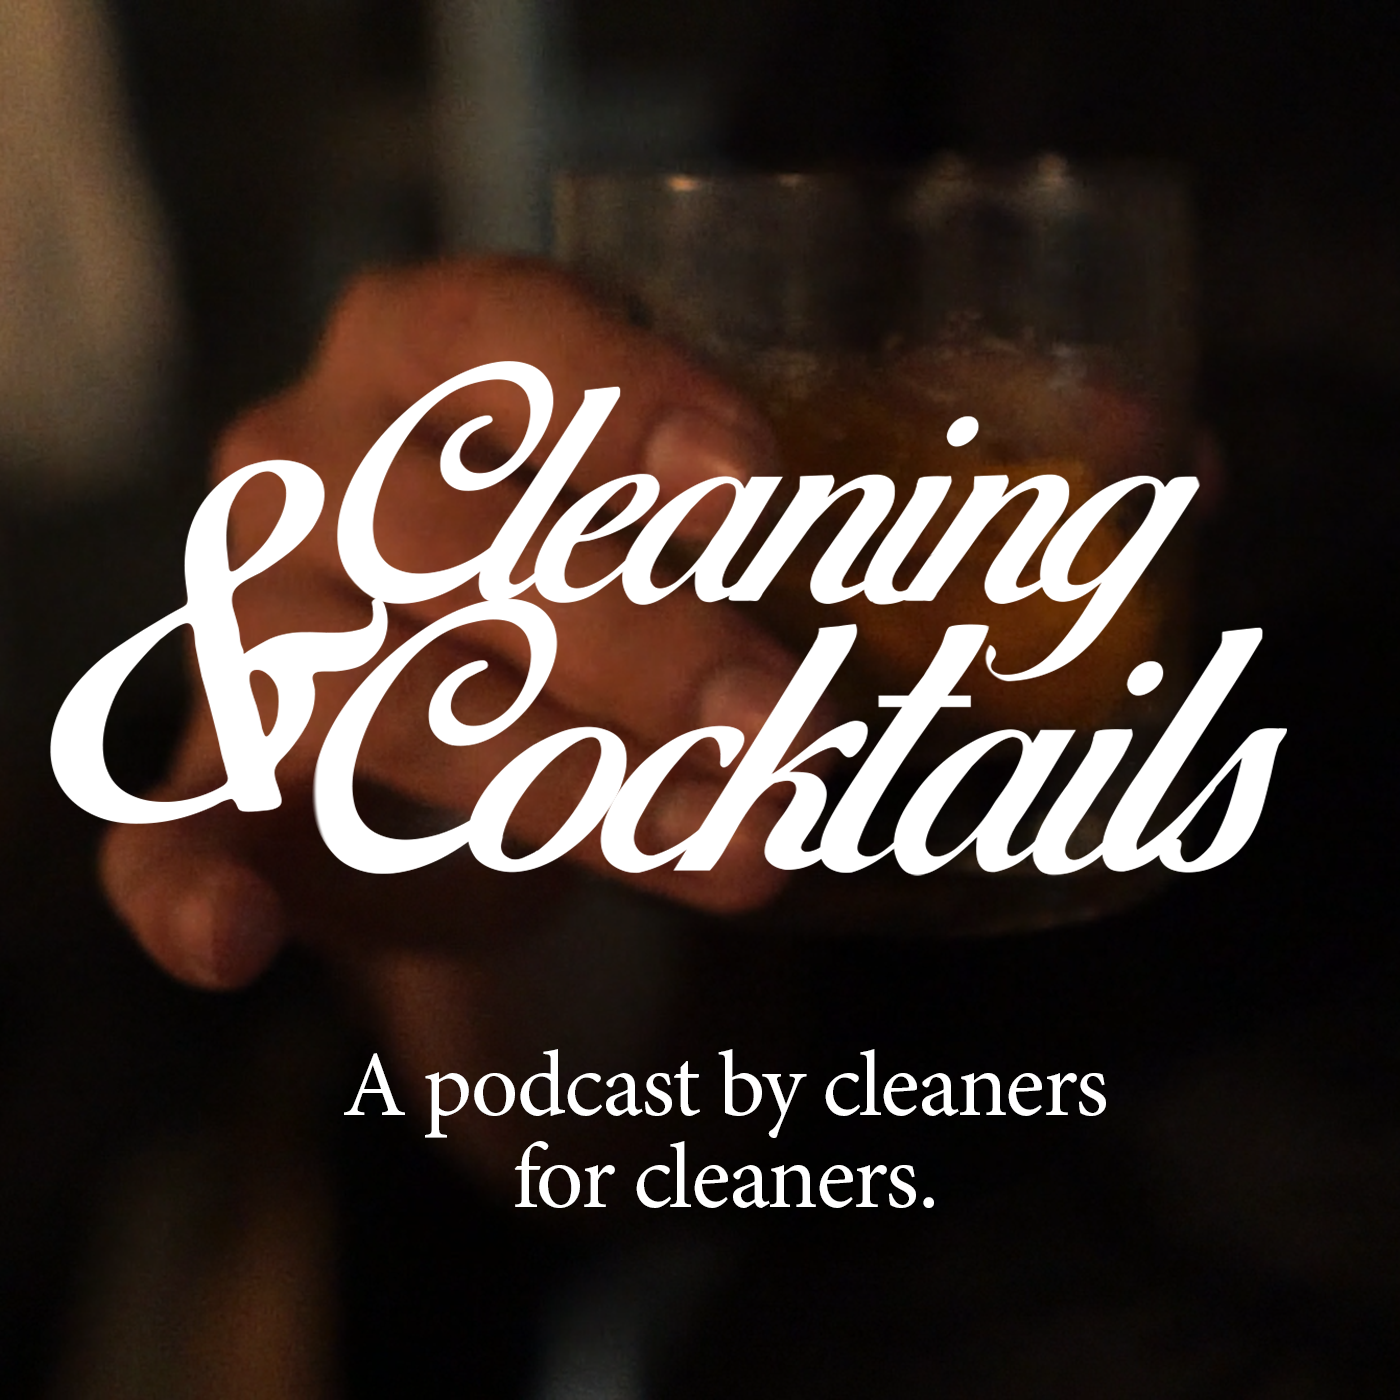 Cleaning and Cocktails cover photo